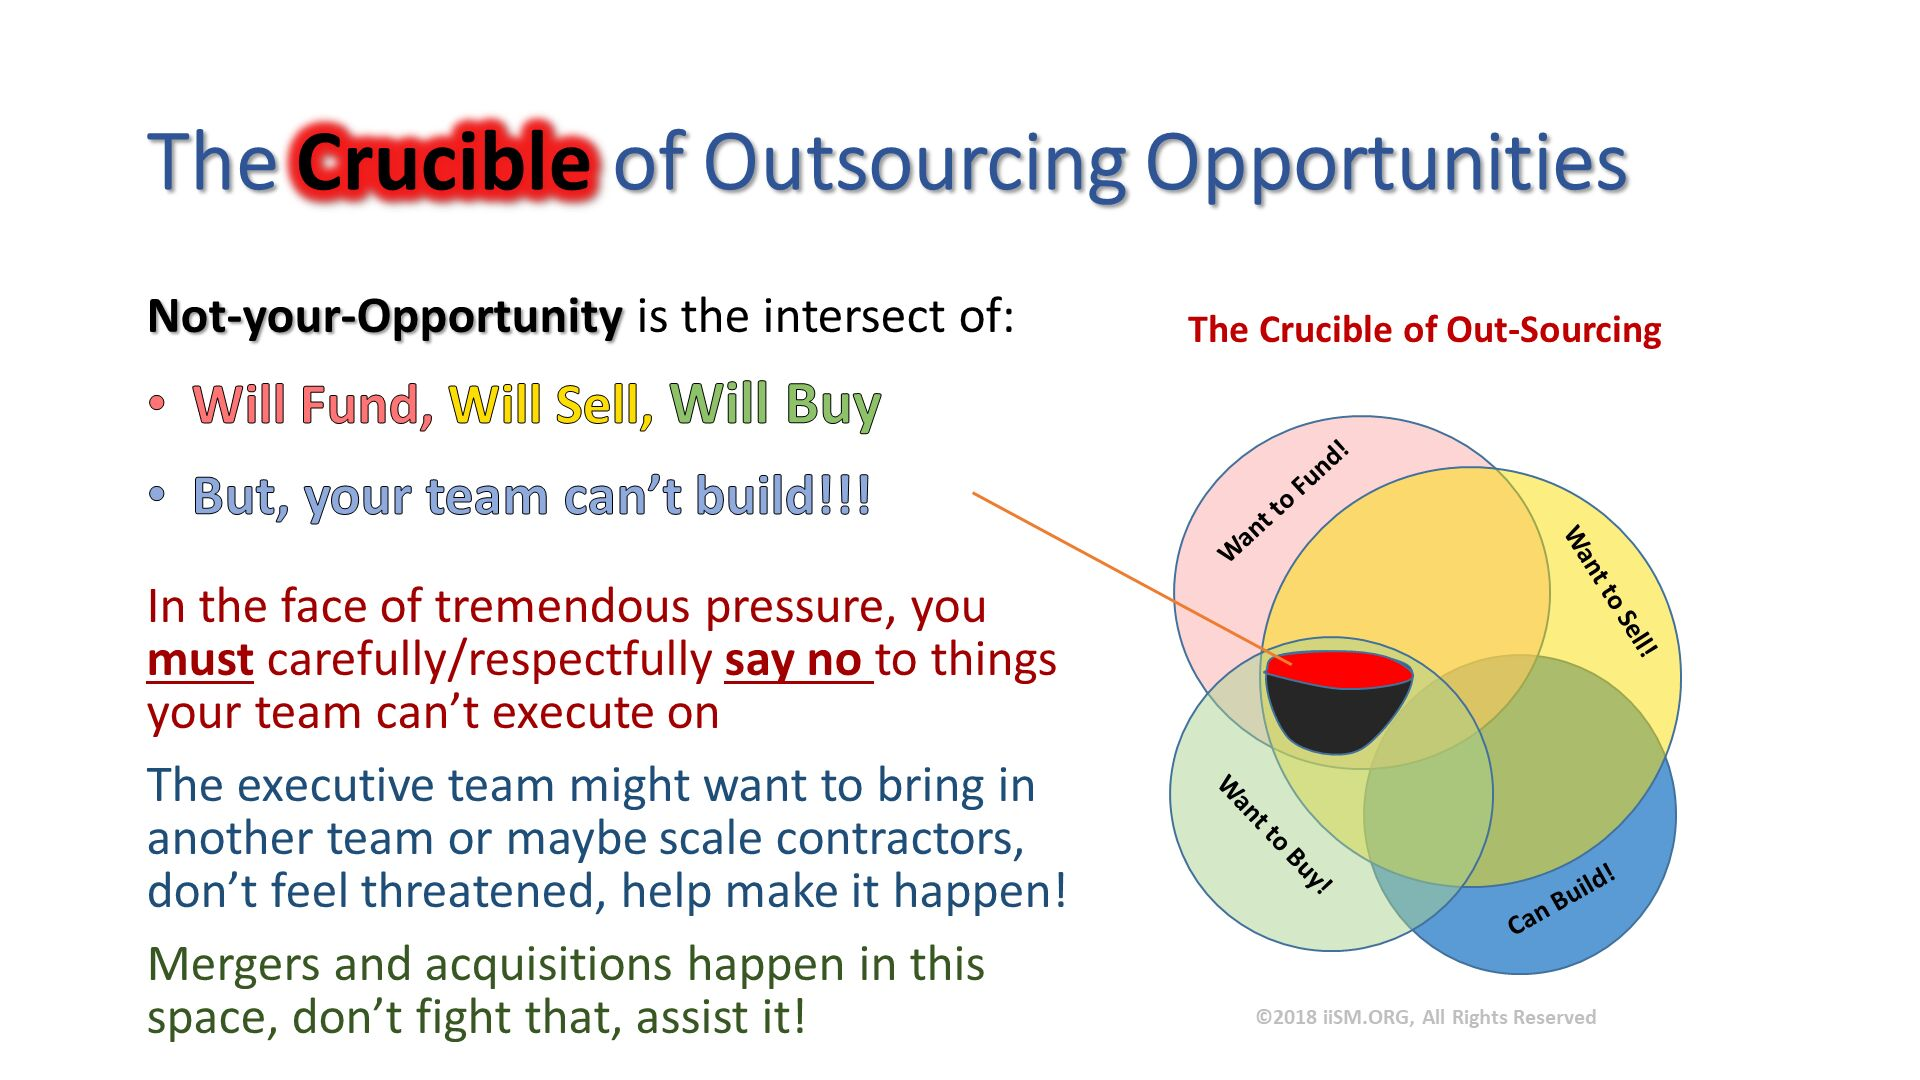 The Crucible of Outsourcing Opportunities. Not-your-Opportunity is the intersect of: Will Fund, Will Sell, Will Buy But, your team can't build!!!  In the face of tremendous pressure, you must carefully/respectfully say no to things your team can't execute on The executive team might want to bring in another team or maybe scale contractors, don't feel threatened, help make it happen! Mergers and acquisitions happen in this space, don't fight that, assist it! .